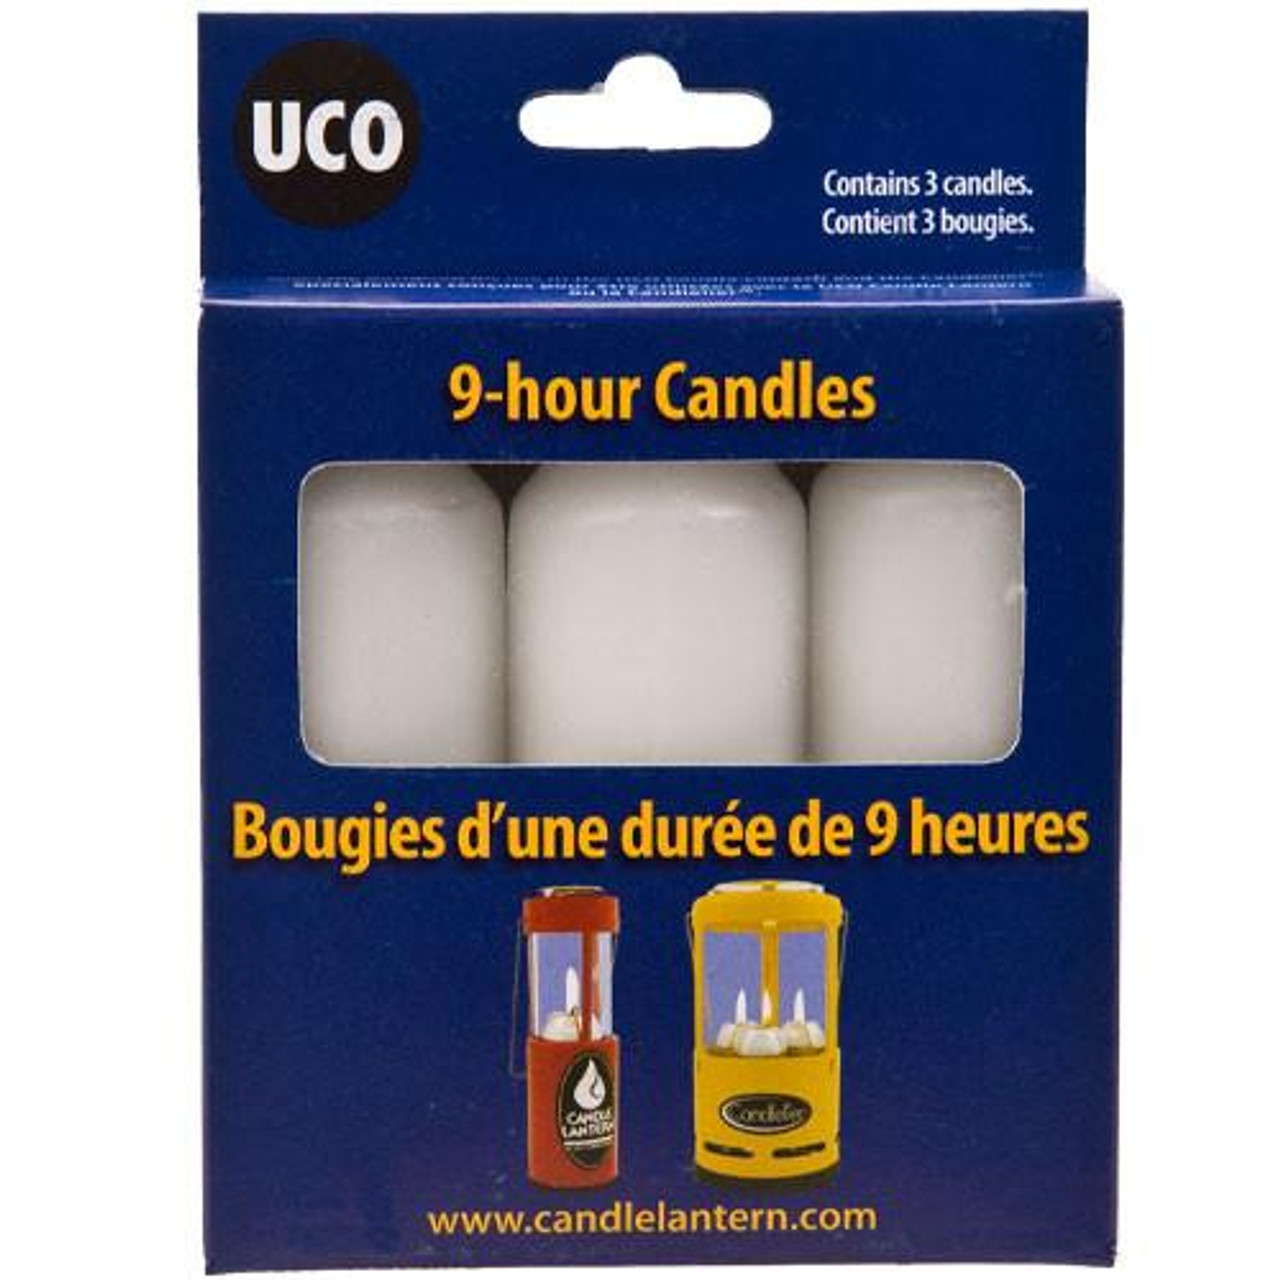 UCO 9 Hour Candles